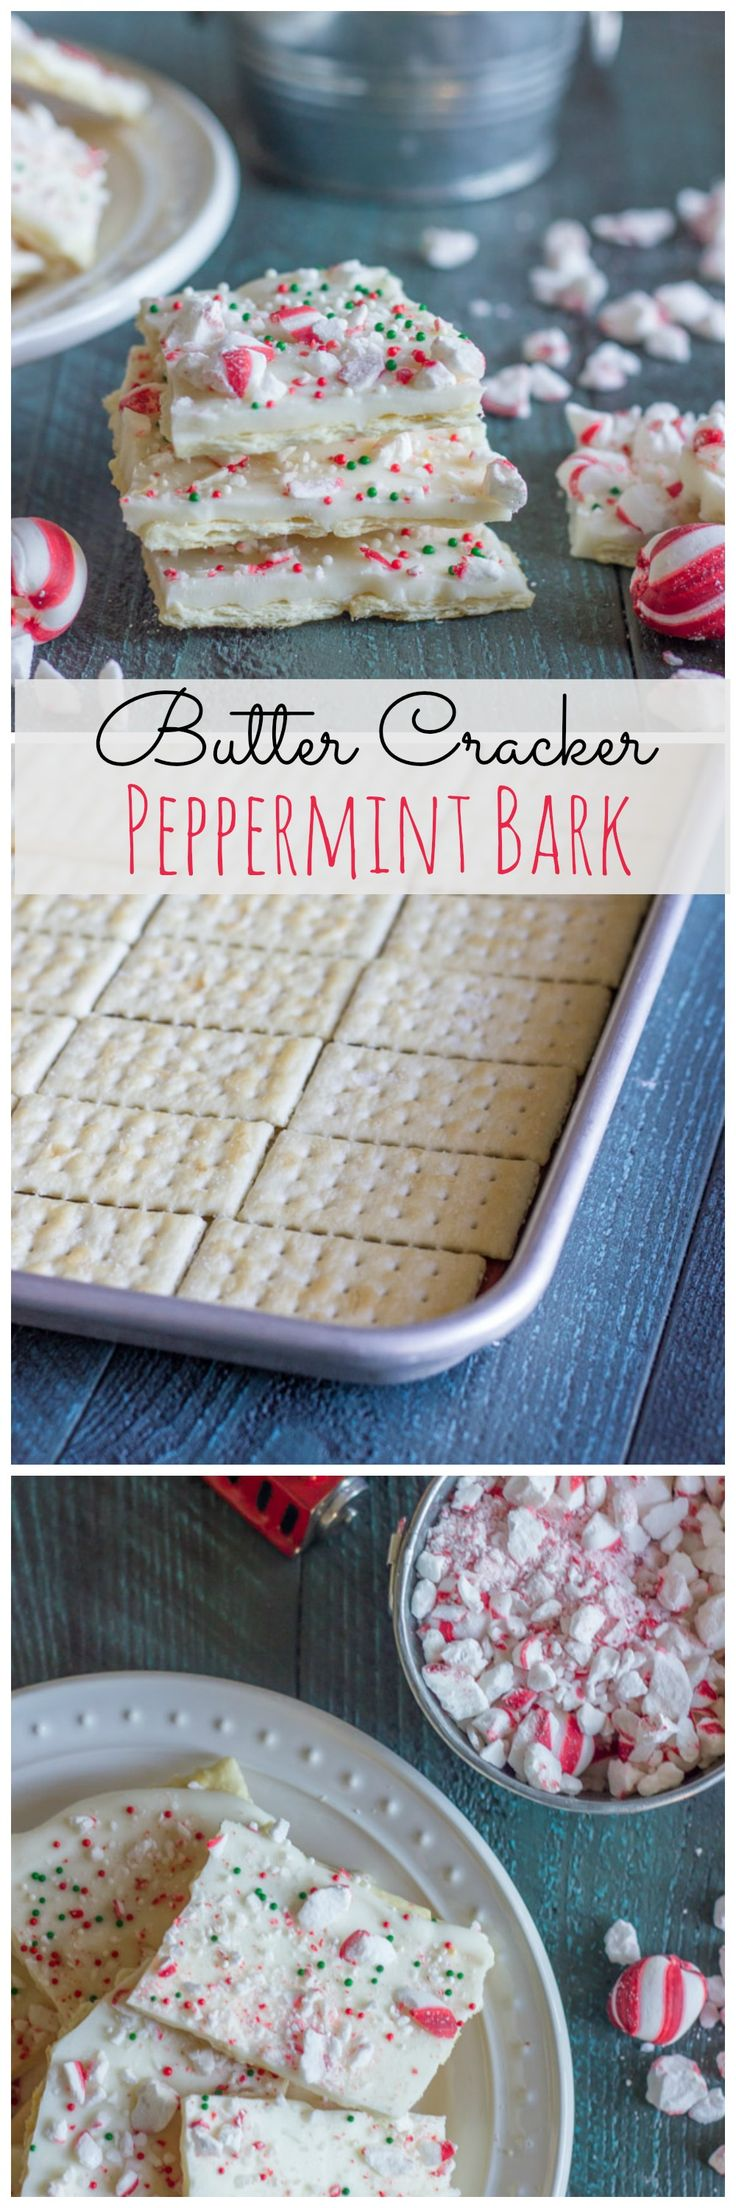 Butter Cracker Peppermint Bark - sweet and salty!